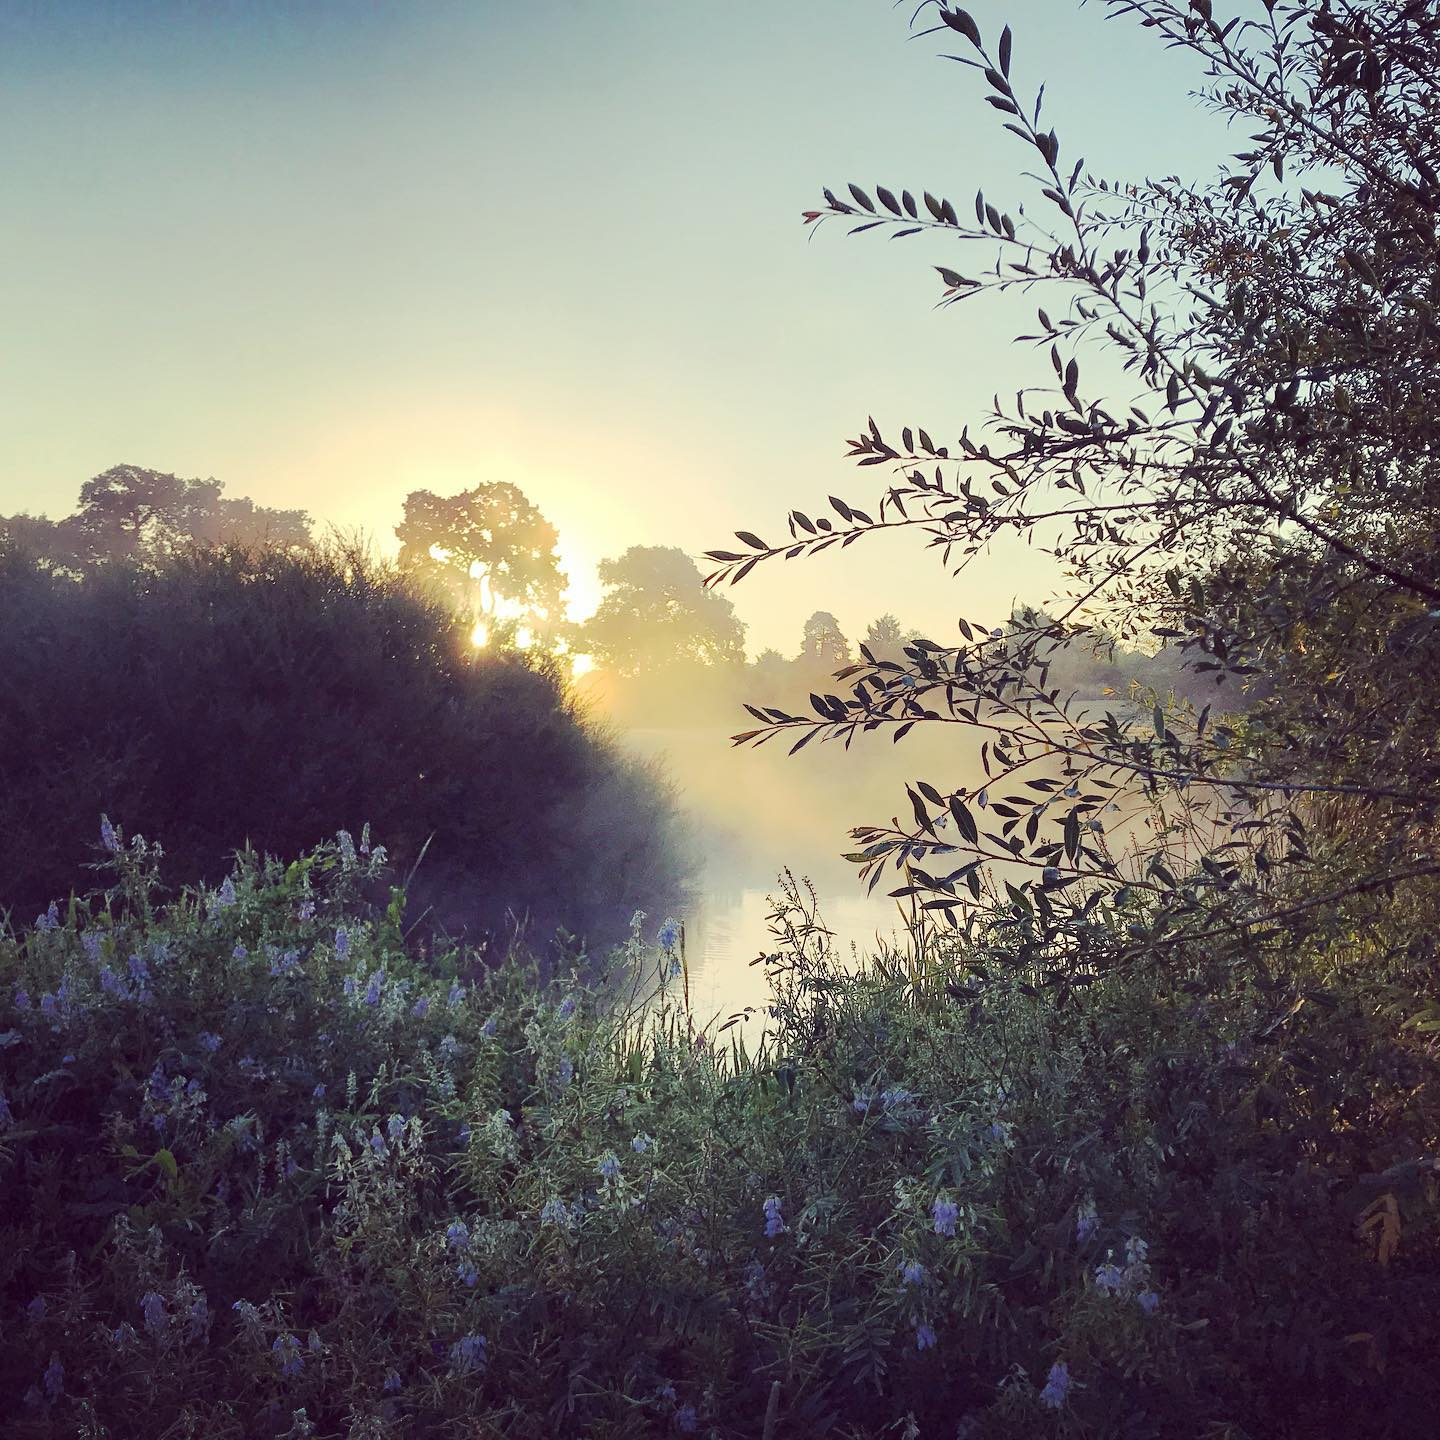 Early morning misty Sunrise around the lake on my shoot this morning ...#gardenphotography #gardenphotographer #sunrise #misty #mist #shotoniphone